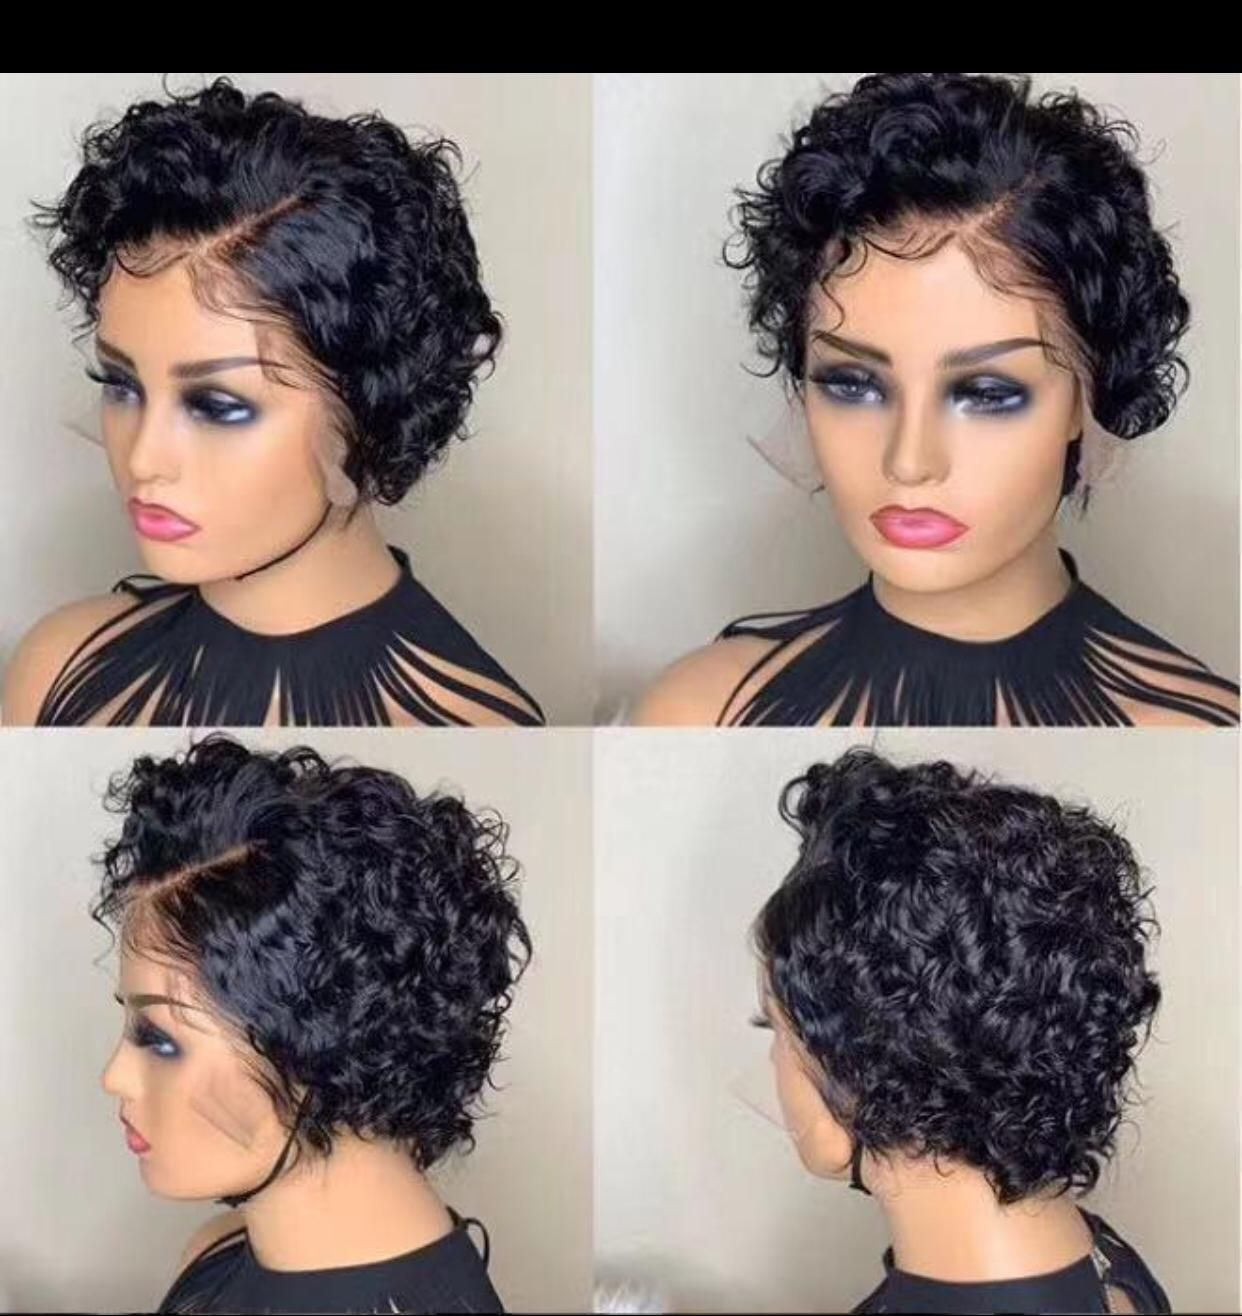 Human Wigs African American Hair Lace Front Ladies Wigs And Hair Pieces Diamond Hair Pieces Colored Lace Hair Lace Wigs Lace Hair Scrunchie Bun Bridal Hair Pieces Cheap